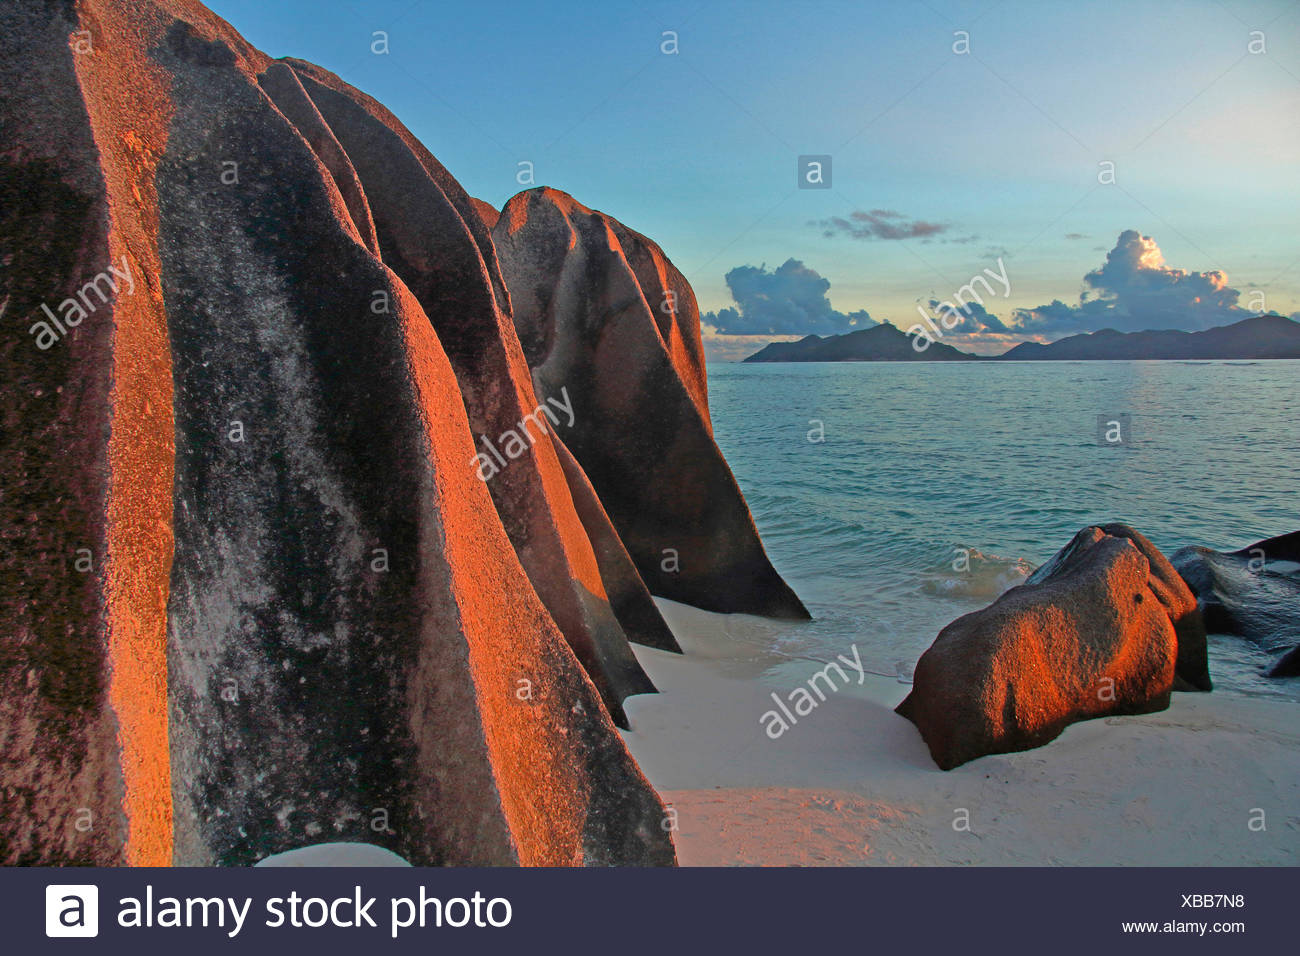 beach with rutted granite rocks and view onto the island Praslin in the background, Seychelles, La Digue, Anse Source d Argent - Stock Image